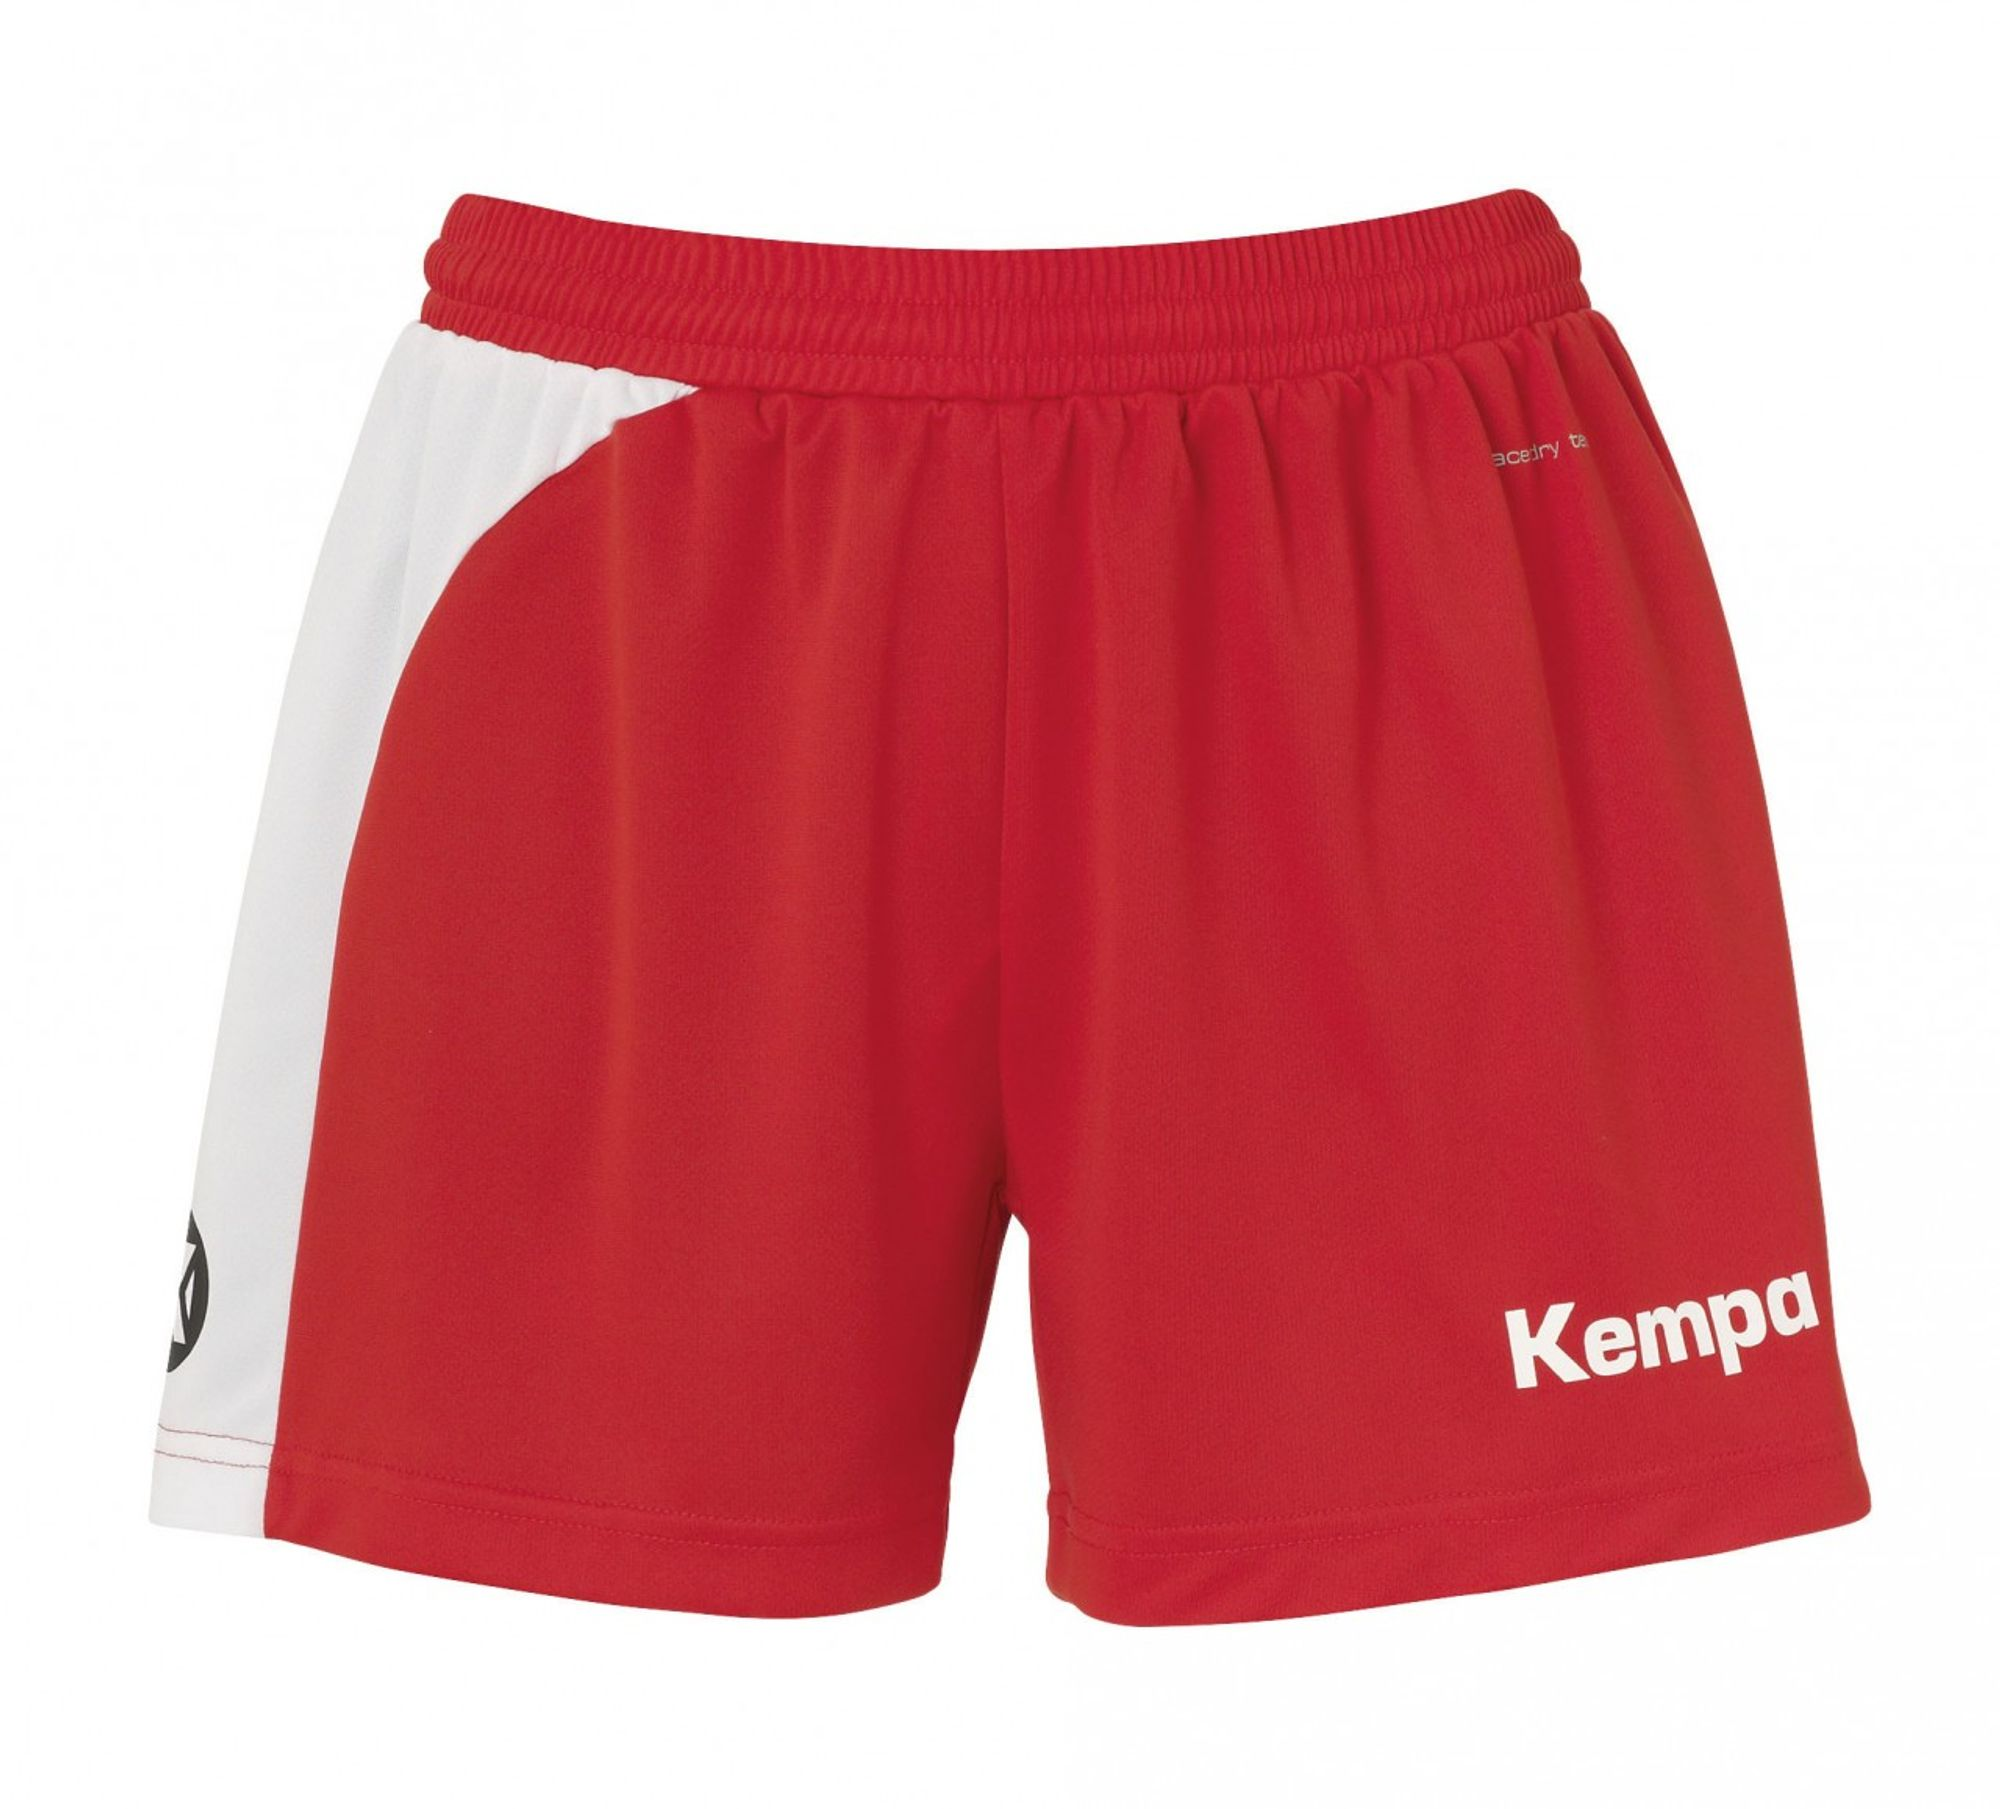 Kempa PEAK SHORTS WOMEN - rot/weiß